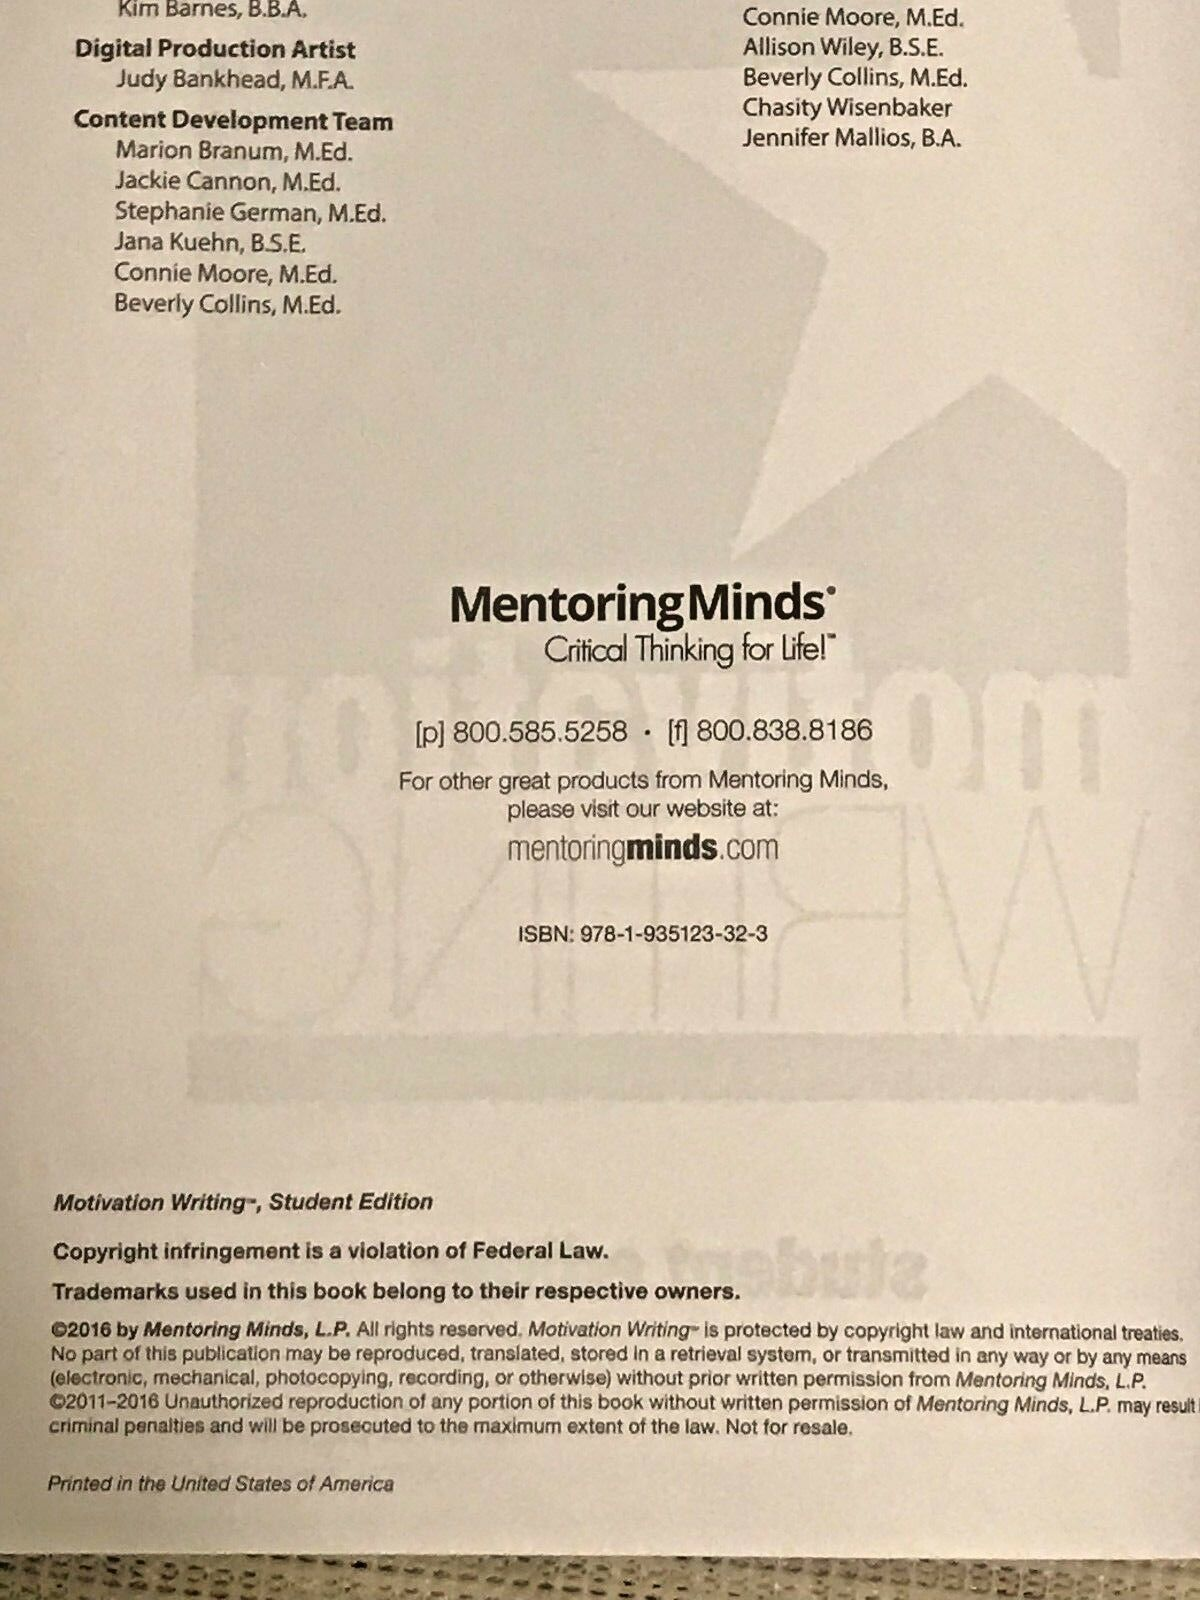 critical thinking for life mentoring minds